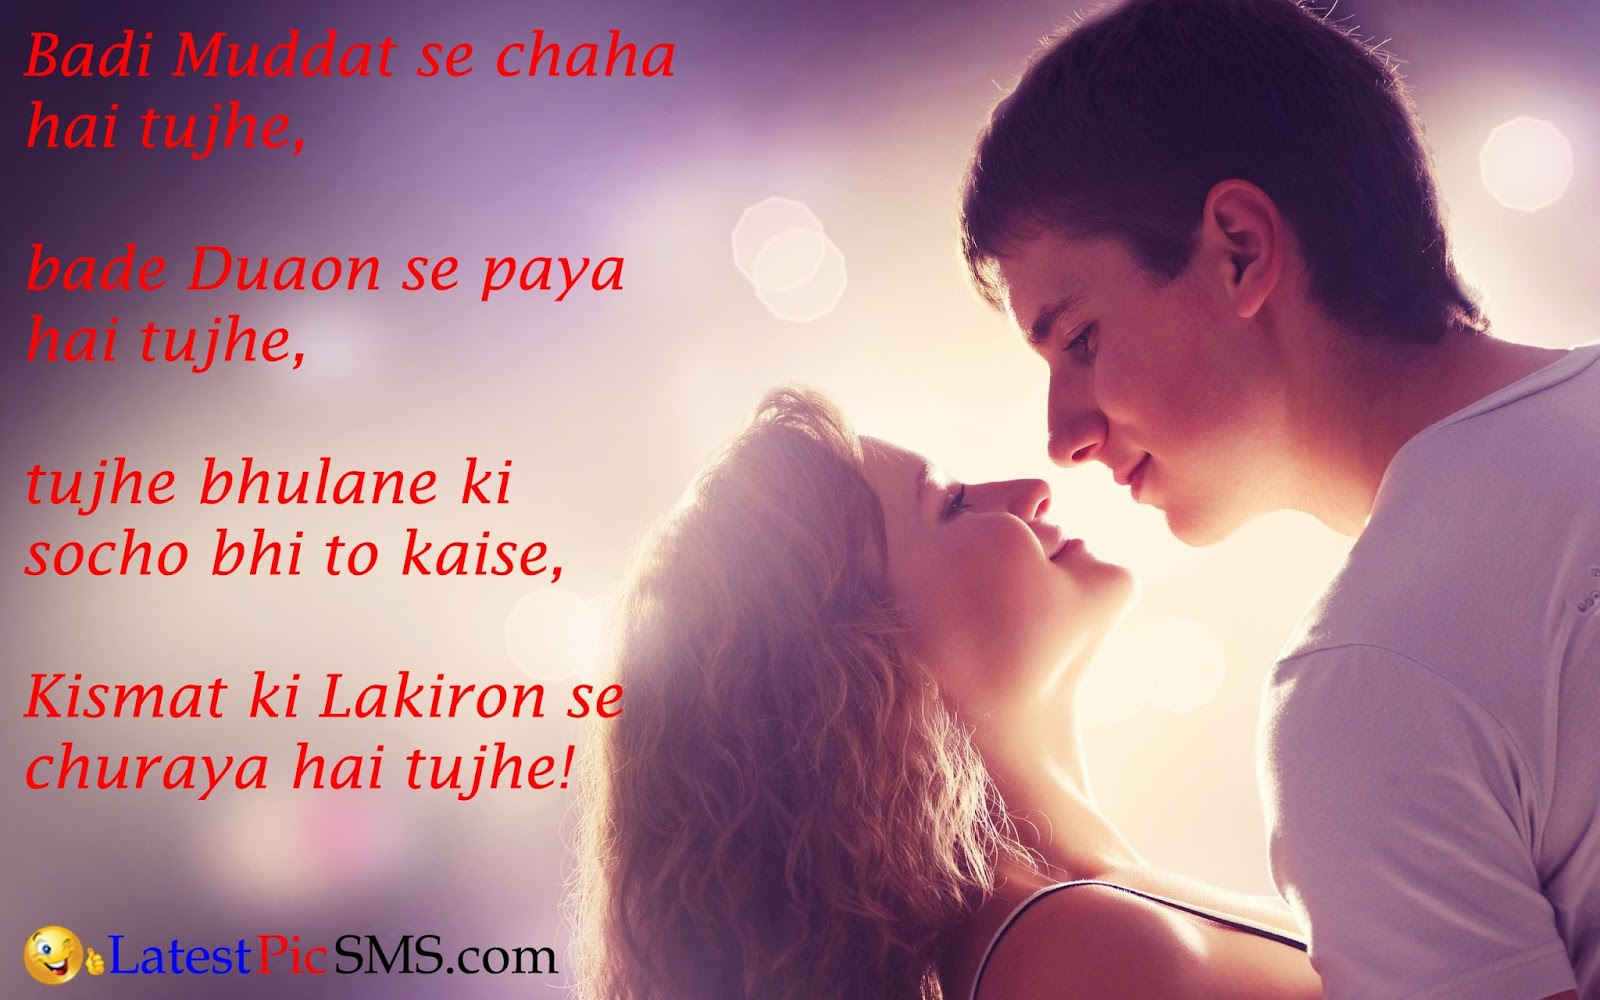 romantic%2Bshayari%2Bimage%2Bwith%2Bquote - Best Love Shayari with Photo Quotes for Whatsapp & Facebook